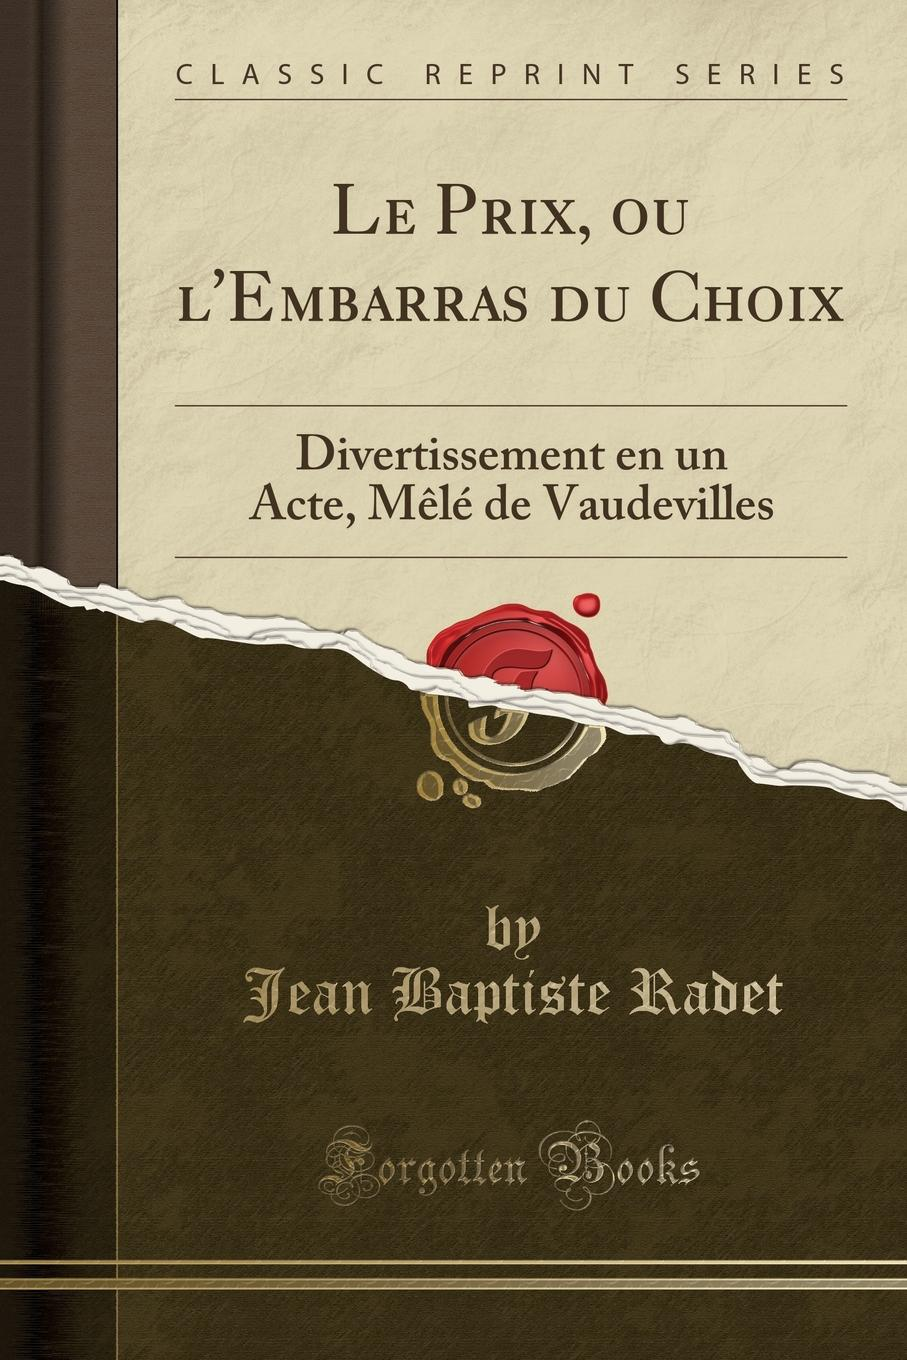 Jean Baptiste Radet Le Prix, ou l.Embarras du Choix. Divertissement en un Acte, Mele de Vaudevilles (Classic Reprint) motivation and action